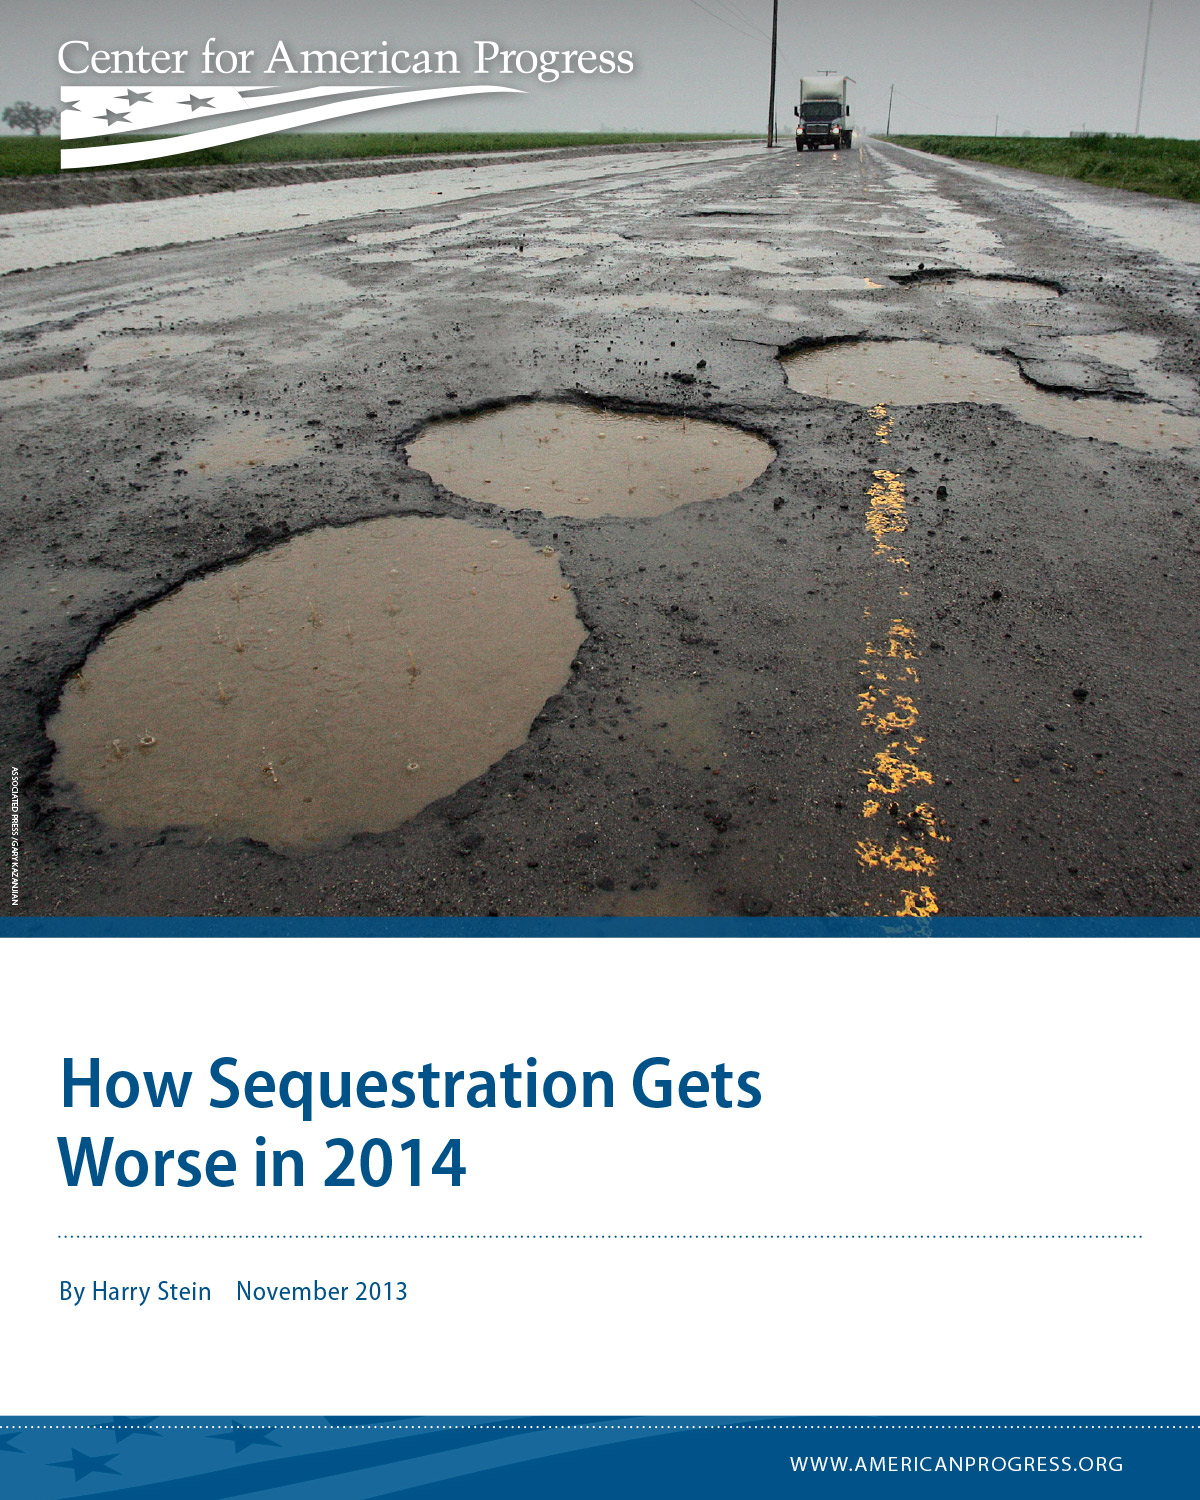 How Sequestration Gets Worse in 2014